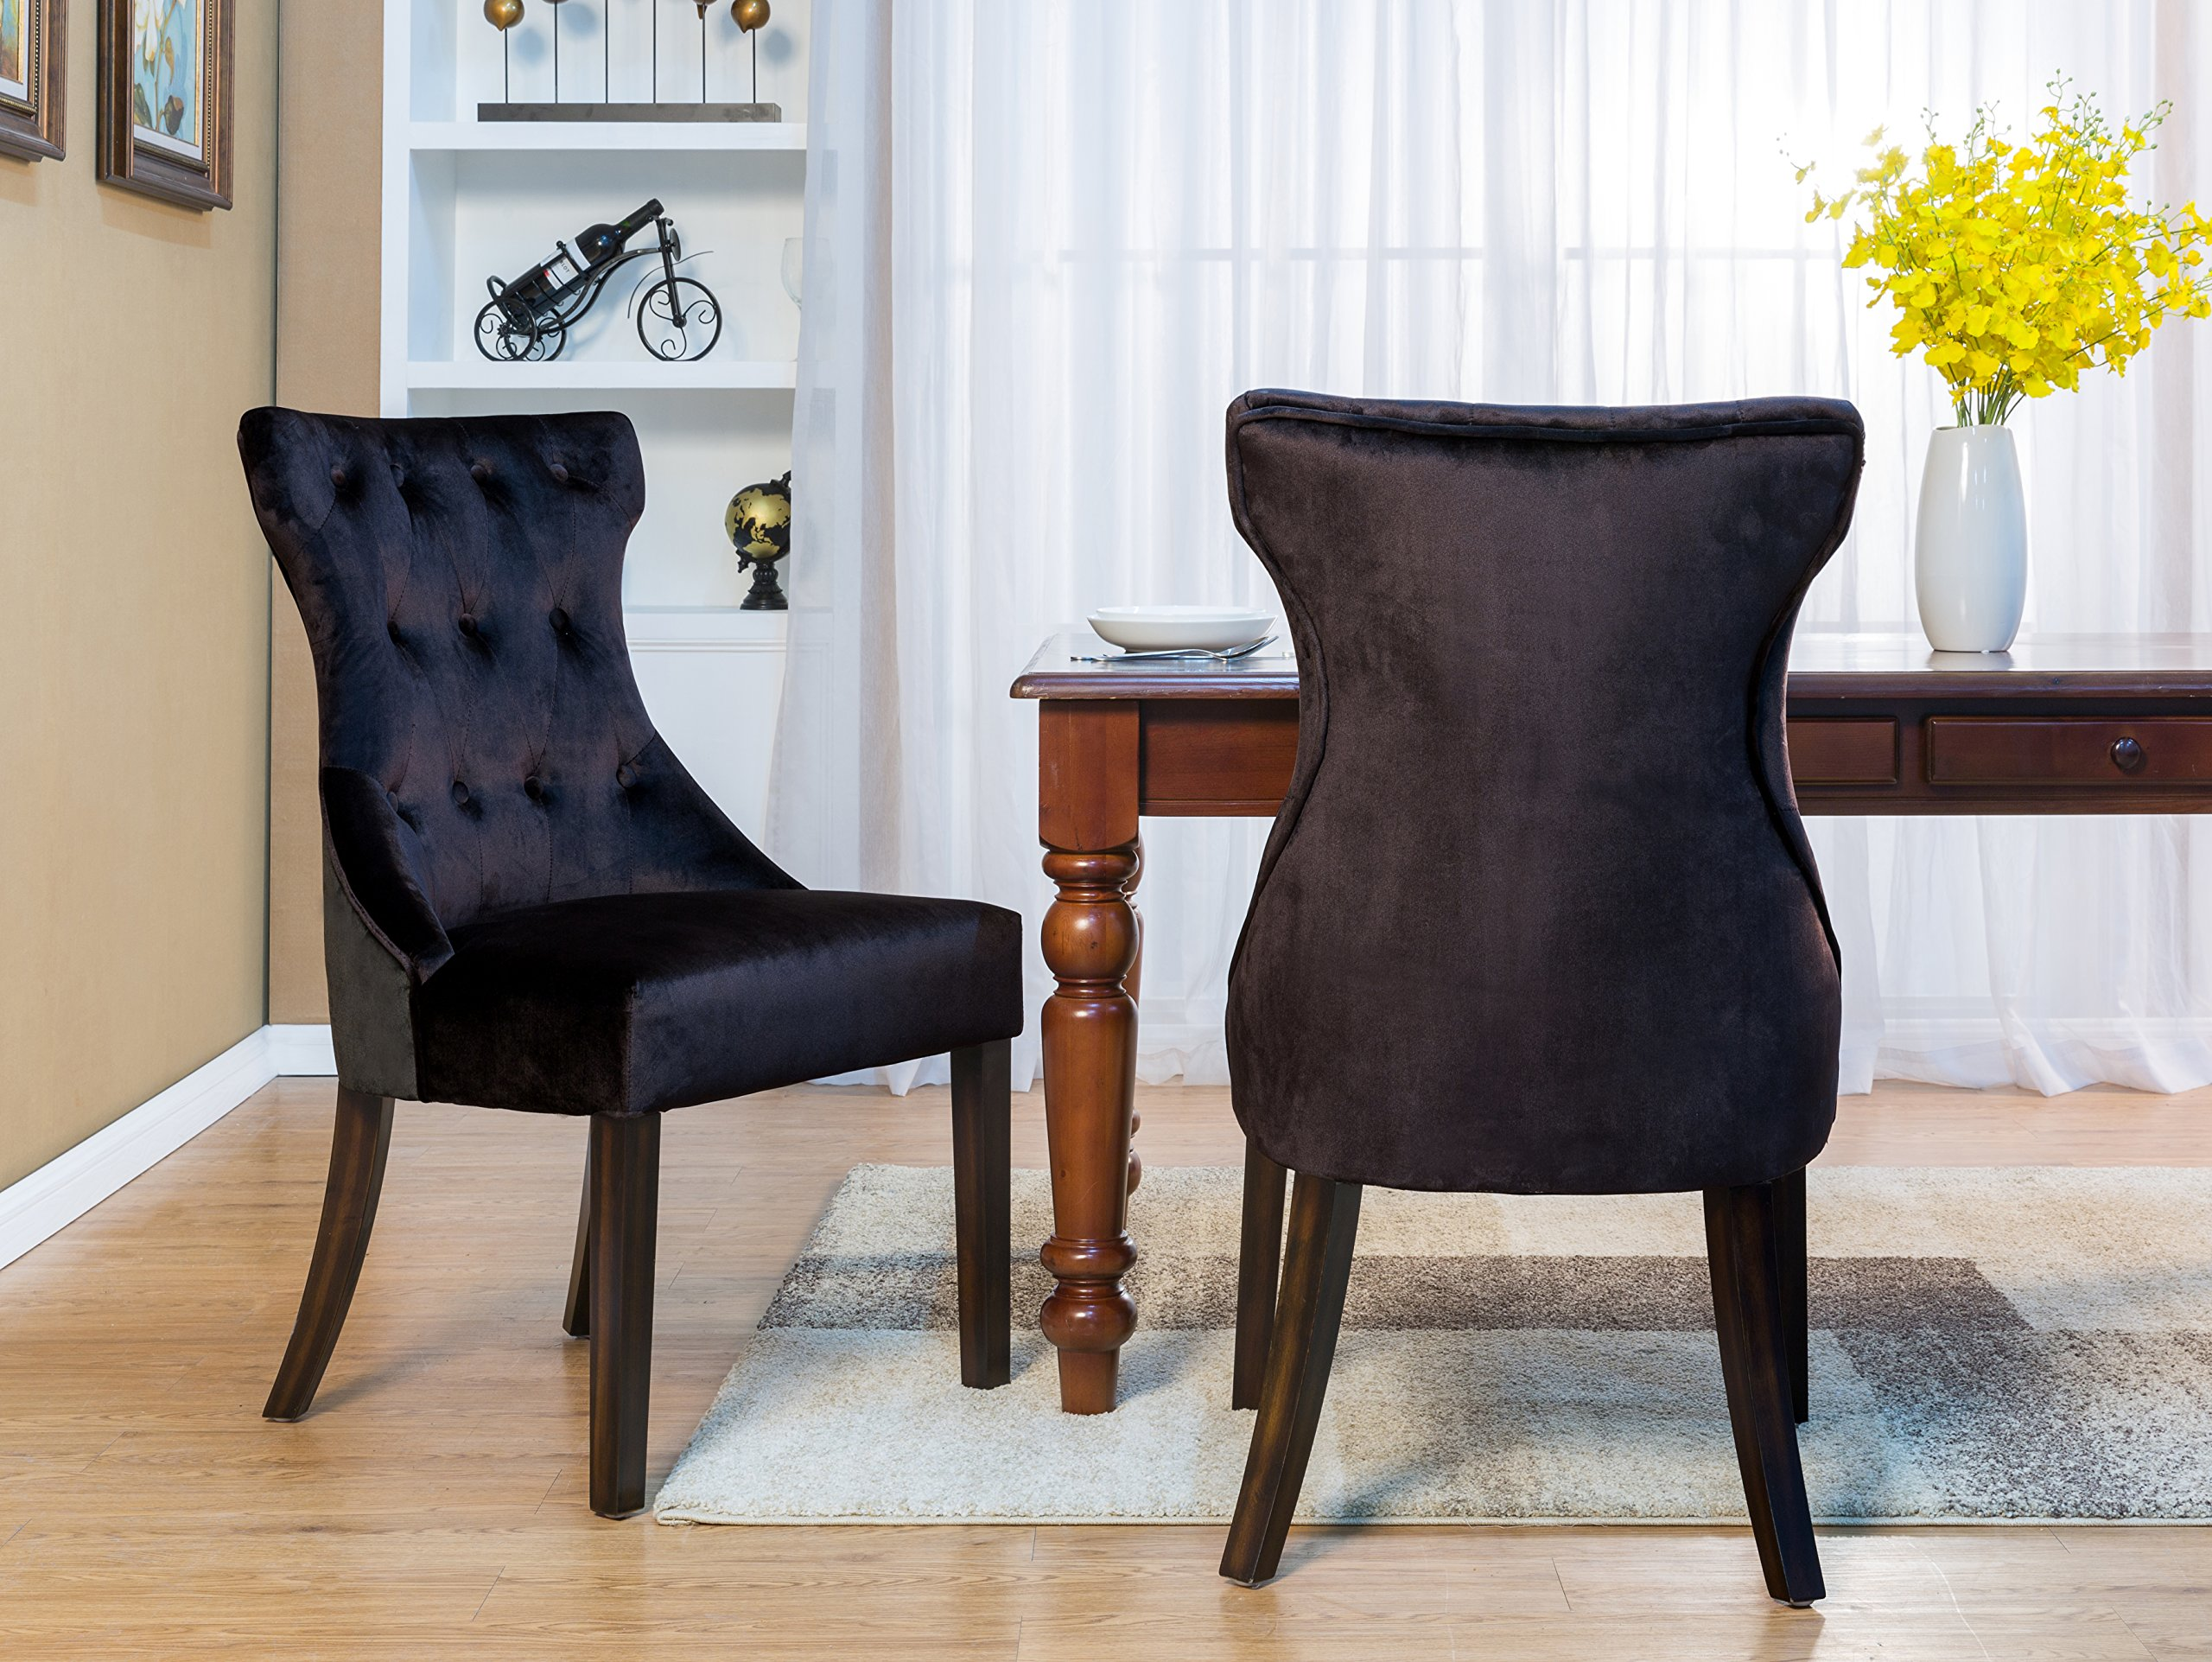 Iconic Home Dickens Dining Side Chair Button Tufted Velvet Espresso Wood Legs Modern Contemporary, Black, Set of 2